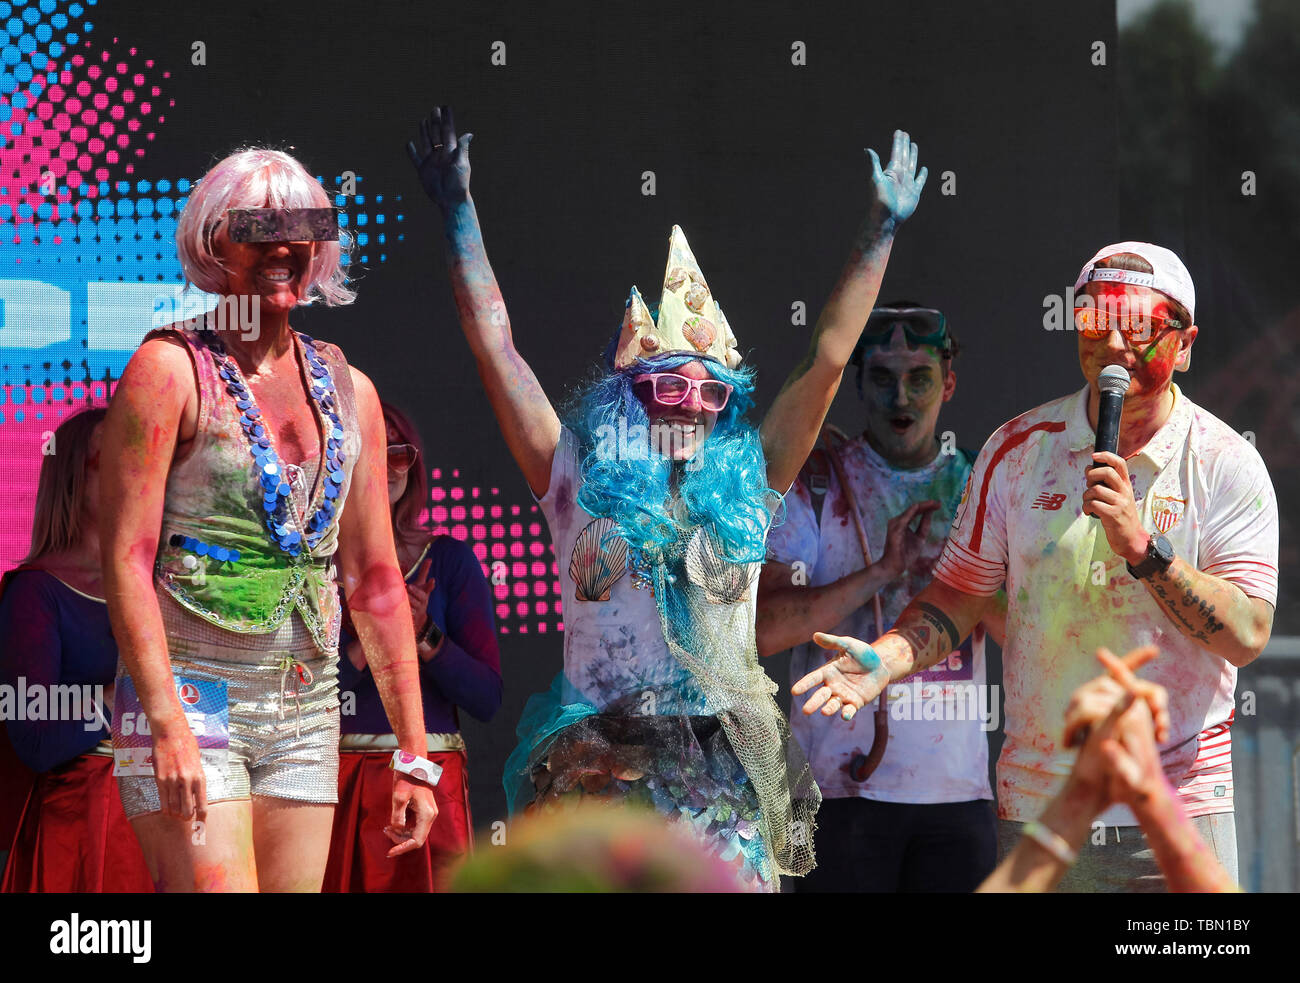 Participants on stage showered with colours during the event. The Color Run, also known as 'the happiest 5,000 meters on the planet', is an event series and paint race, its first event was in the United States in January 2012 since then the run has spread across the globe leaving a trail of color and happy runners across different continents and countries. The untimed event has no winners or prizes, but runners are showered with colored powder, made of food-grade corn starch, at stations along the run. In Ukrainian capital the first time Kyiv Color Run started in 2014. - Stock Image